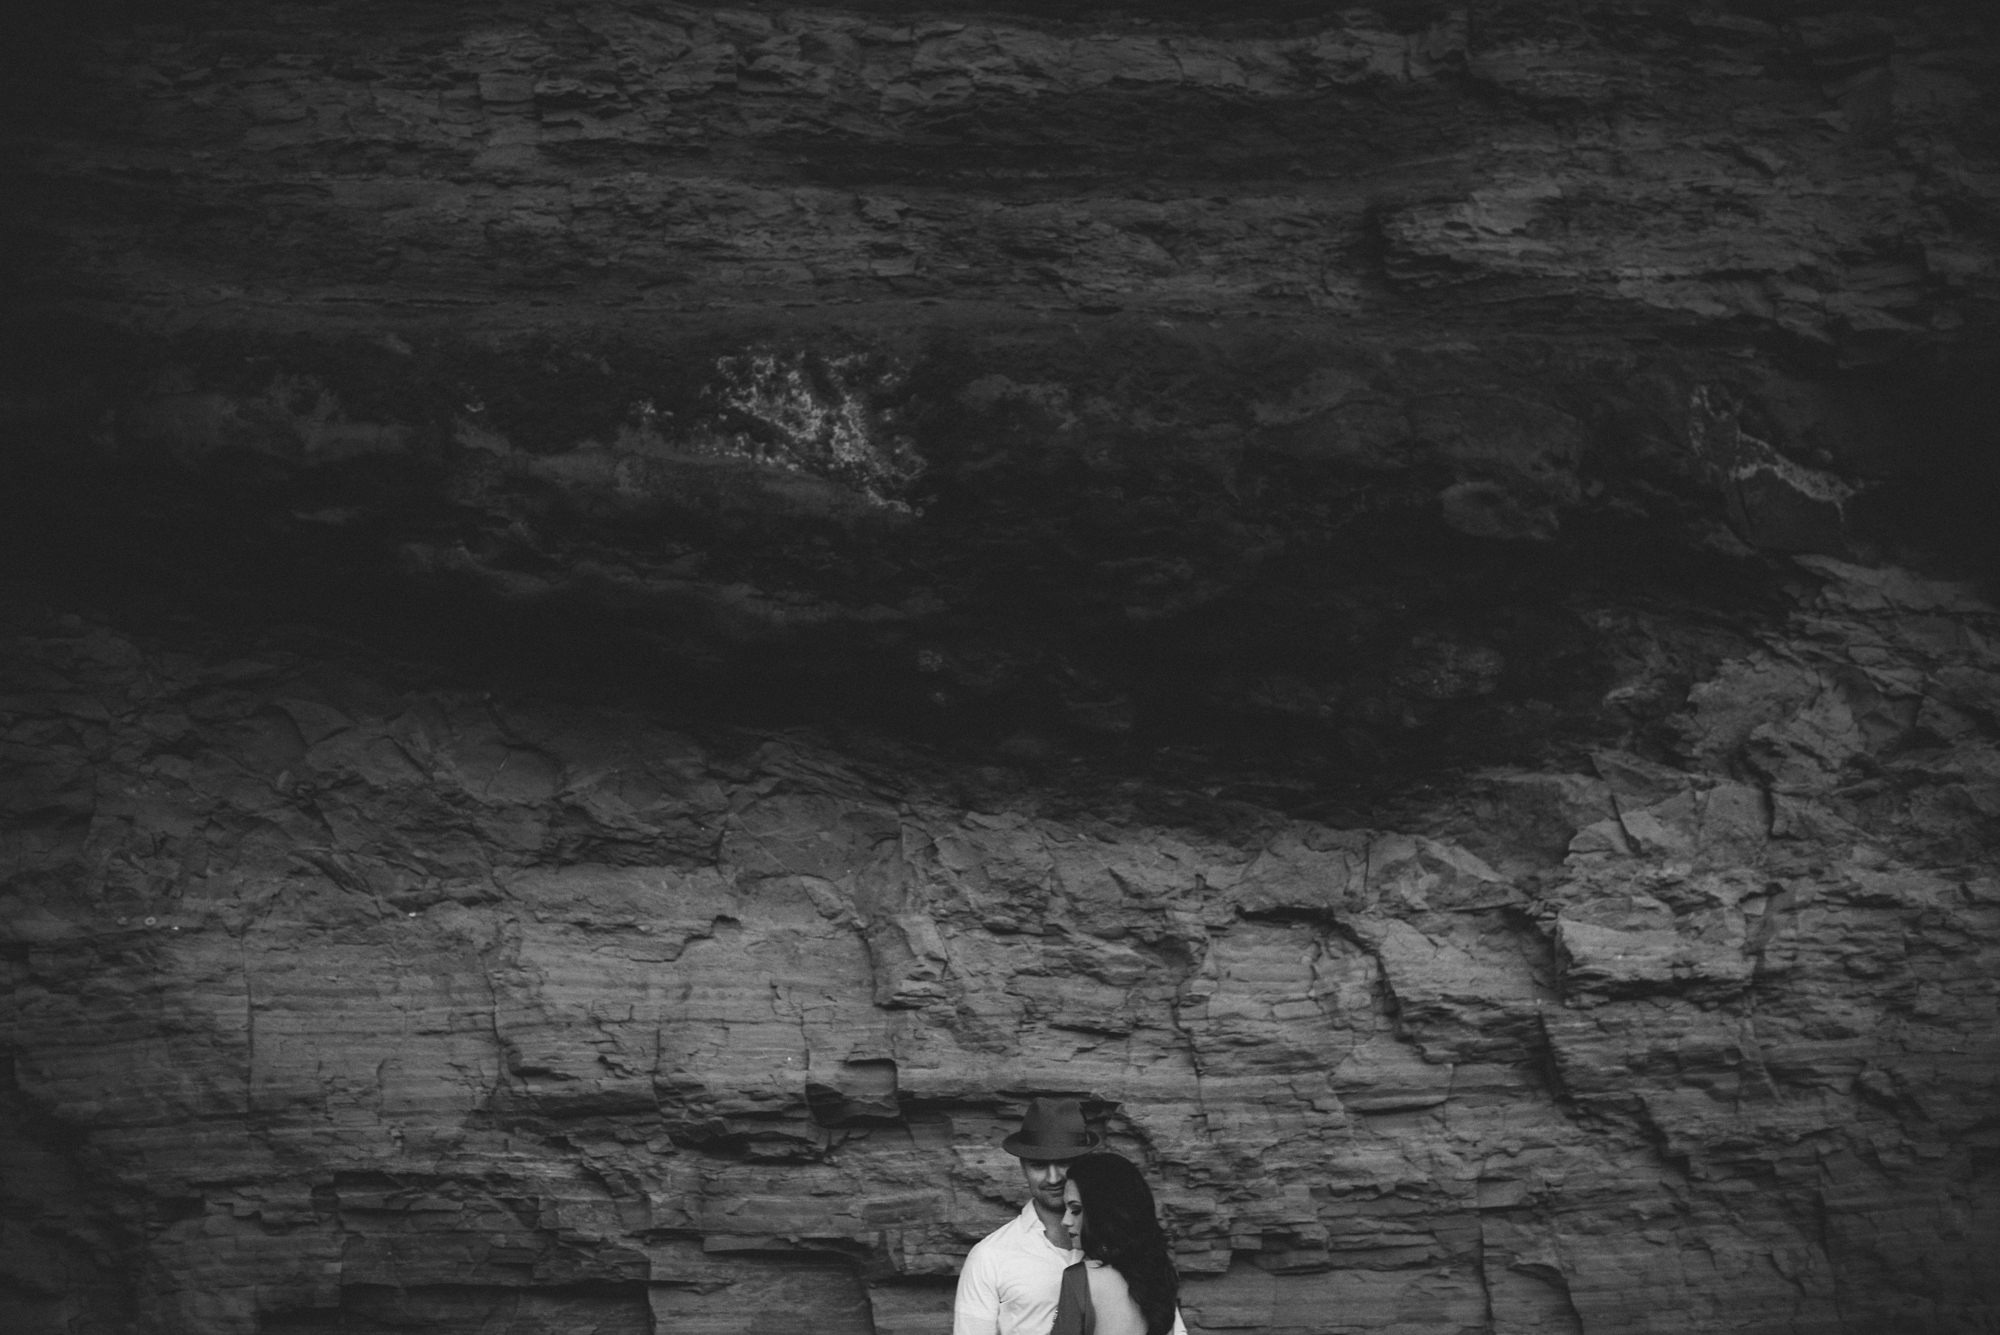 Isaiah & Taylor Photography - Los Angeles - Destination Wedding Photographers - San Diego Sunset Cliffs Beach Adventure Engagement-27.jpg